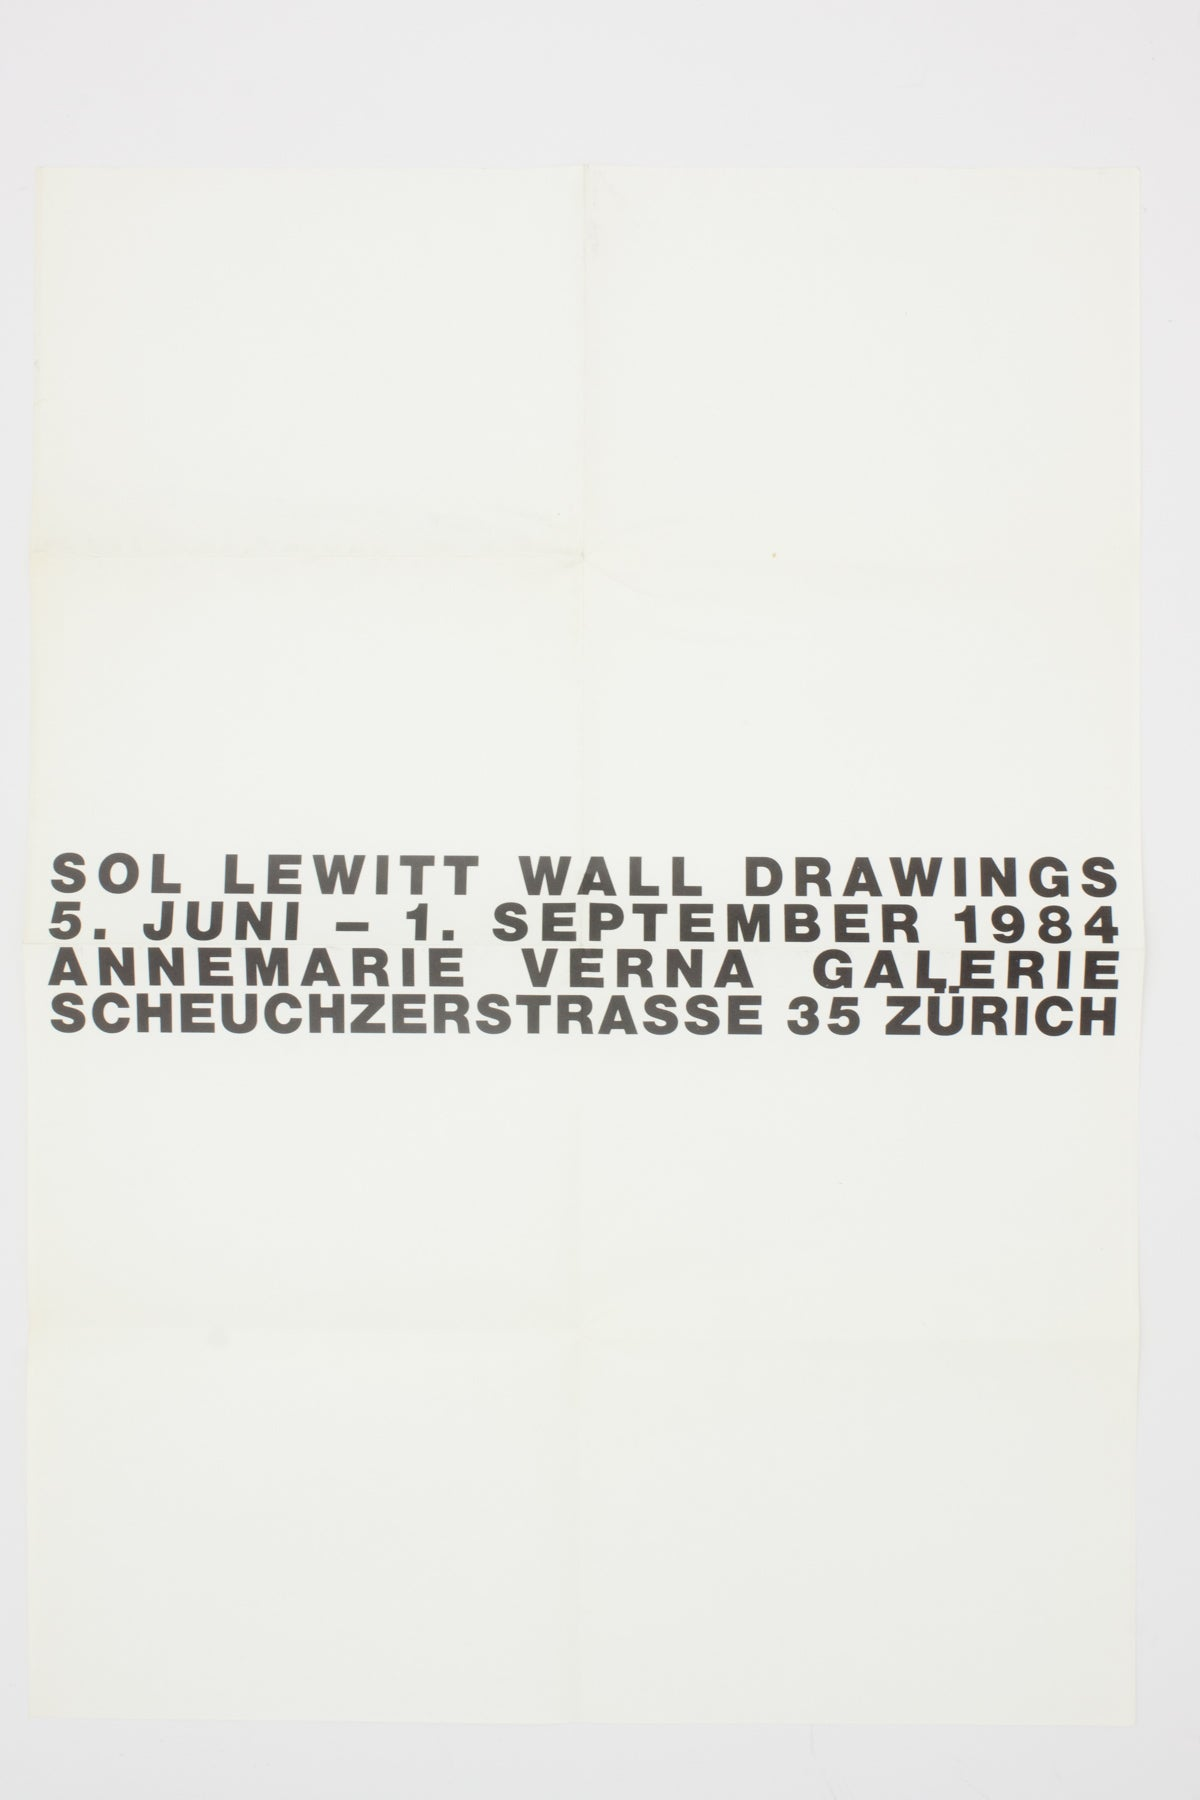 SOL LEWITT WALL DRAWINGS. ORIGINAL POSTER.